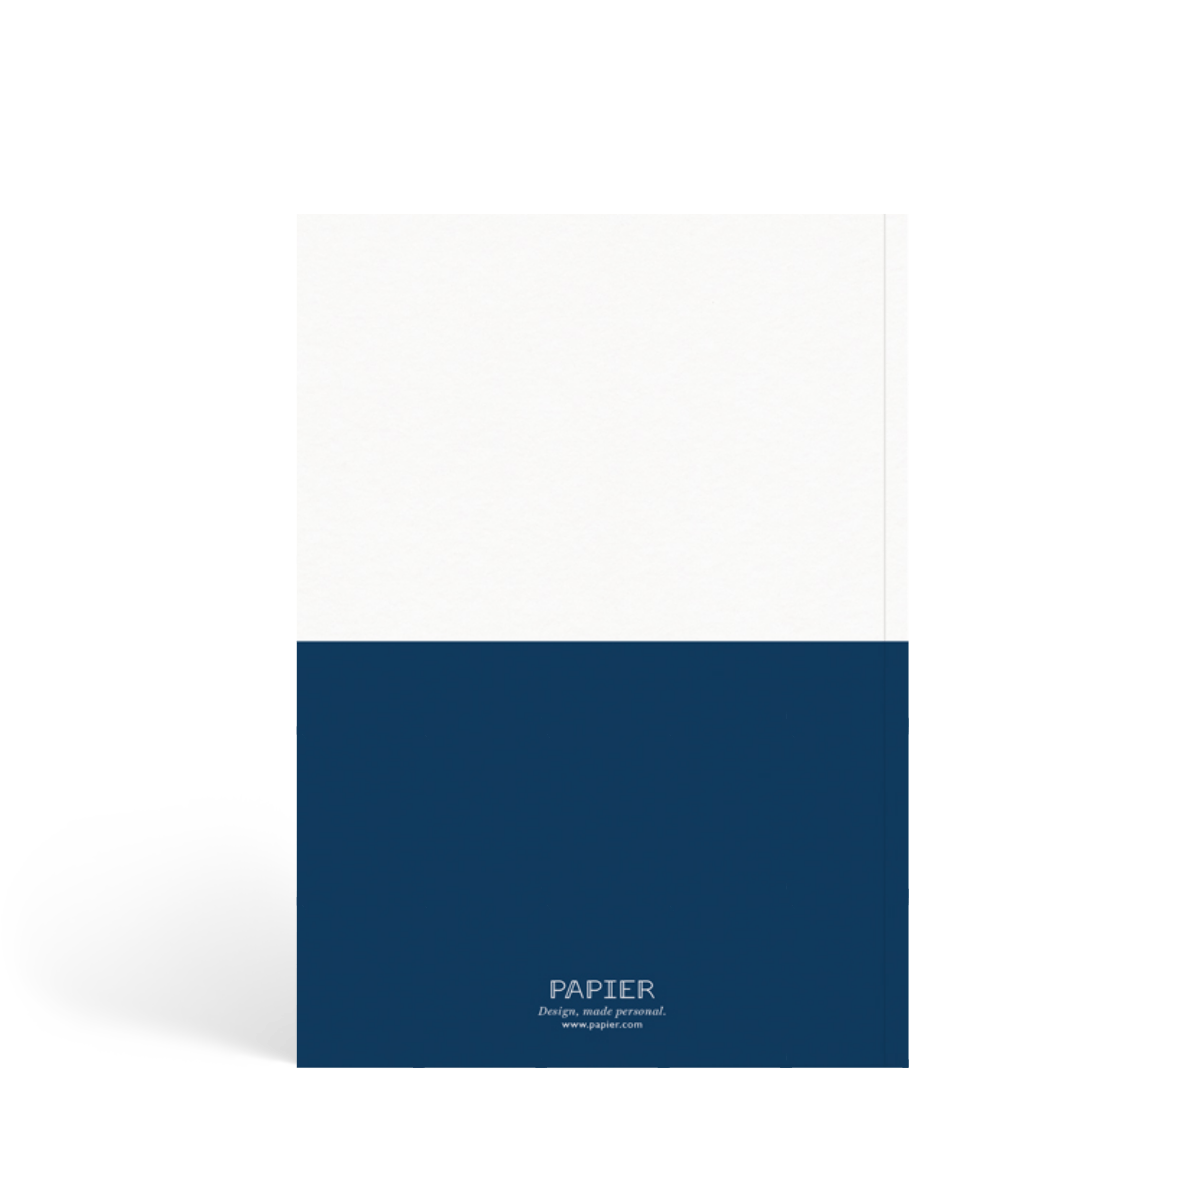 Https%3a%2f%2fwww.papier.com%2fproduct image%2f36158%2f5%2fdemi navy 9080 back 1523907647.png?ixlib=rb 1.1